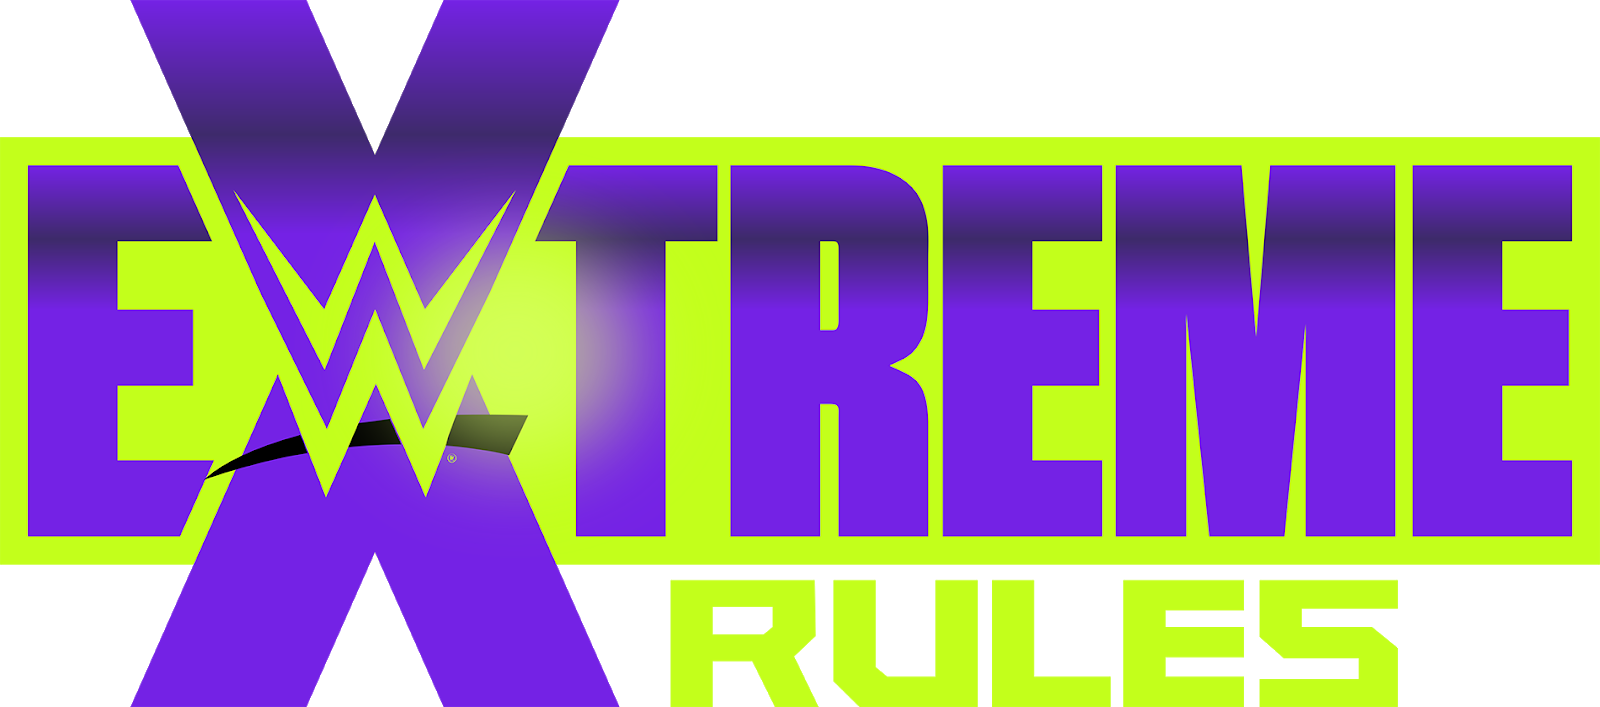 Watch Extreme Rules 2020 PPV Live Results